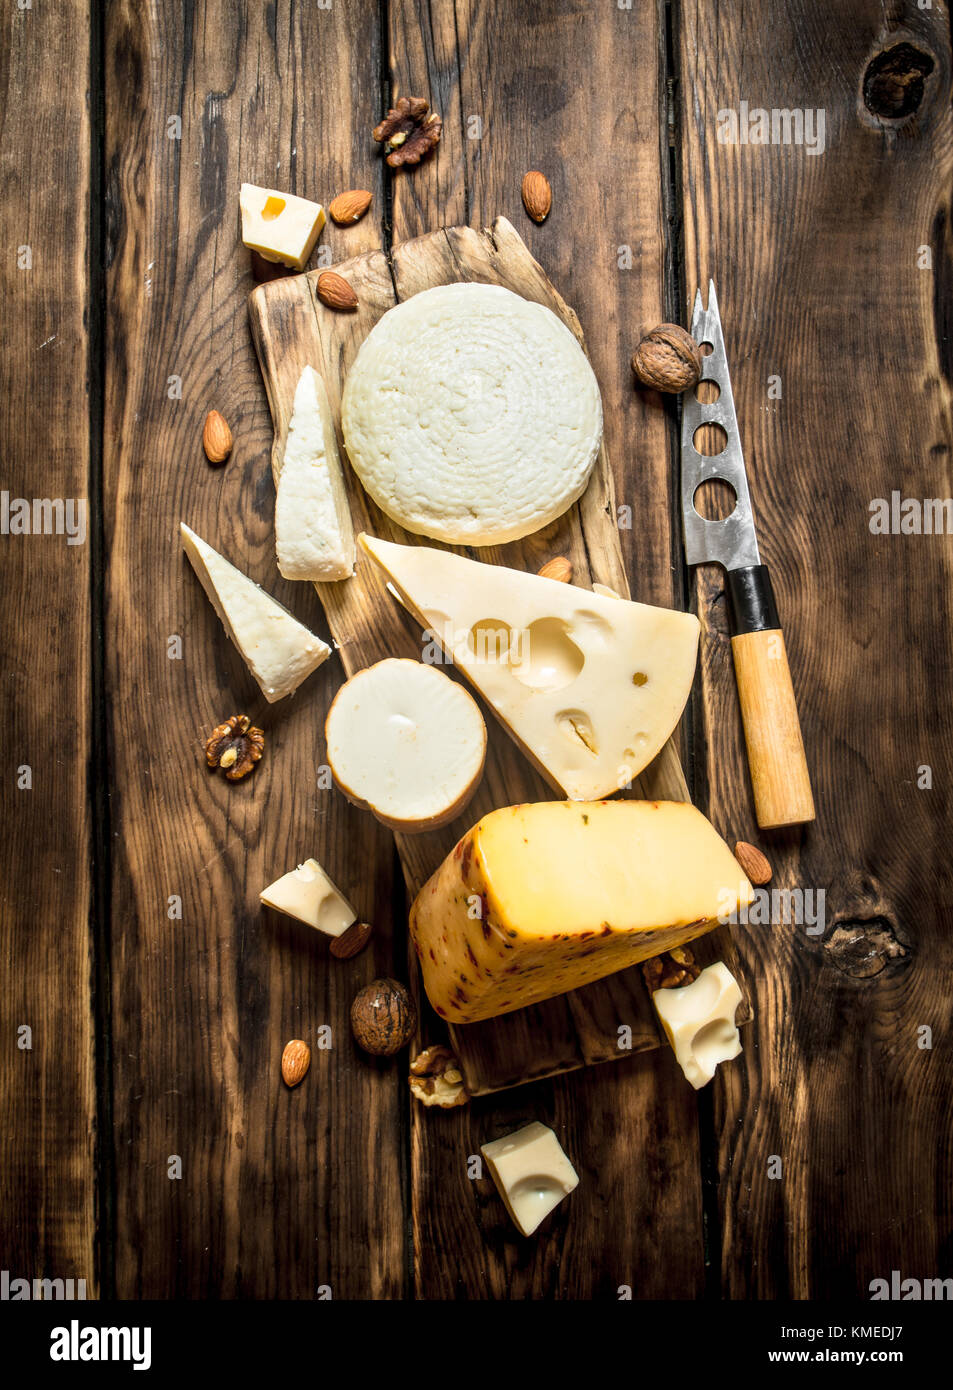 Pieces of cheese with nuts on a Board with a knife. On a wooden table. - Stock Image